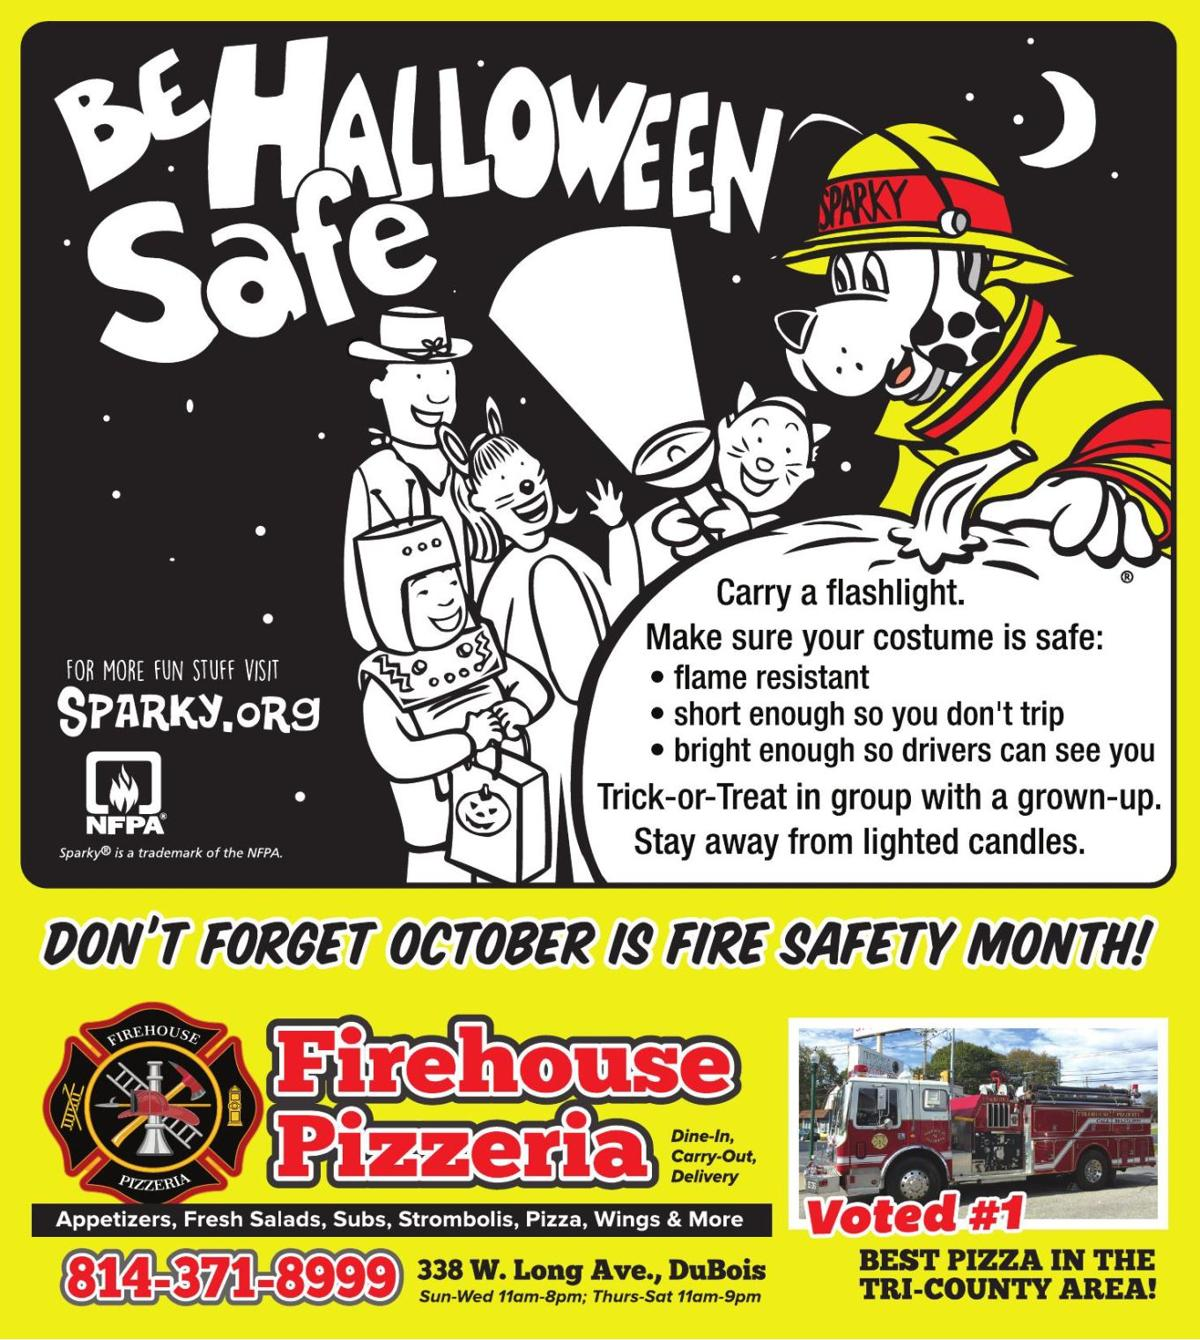 Firehouse Pizza - Coloring Page for Fire Safety Month